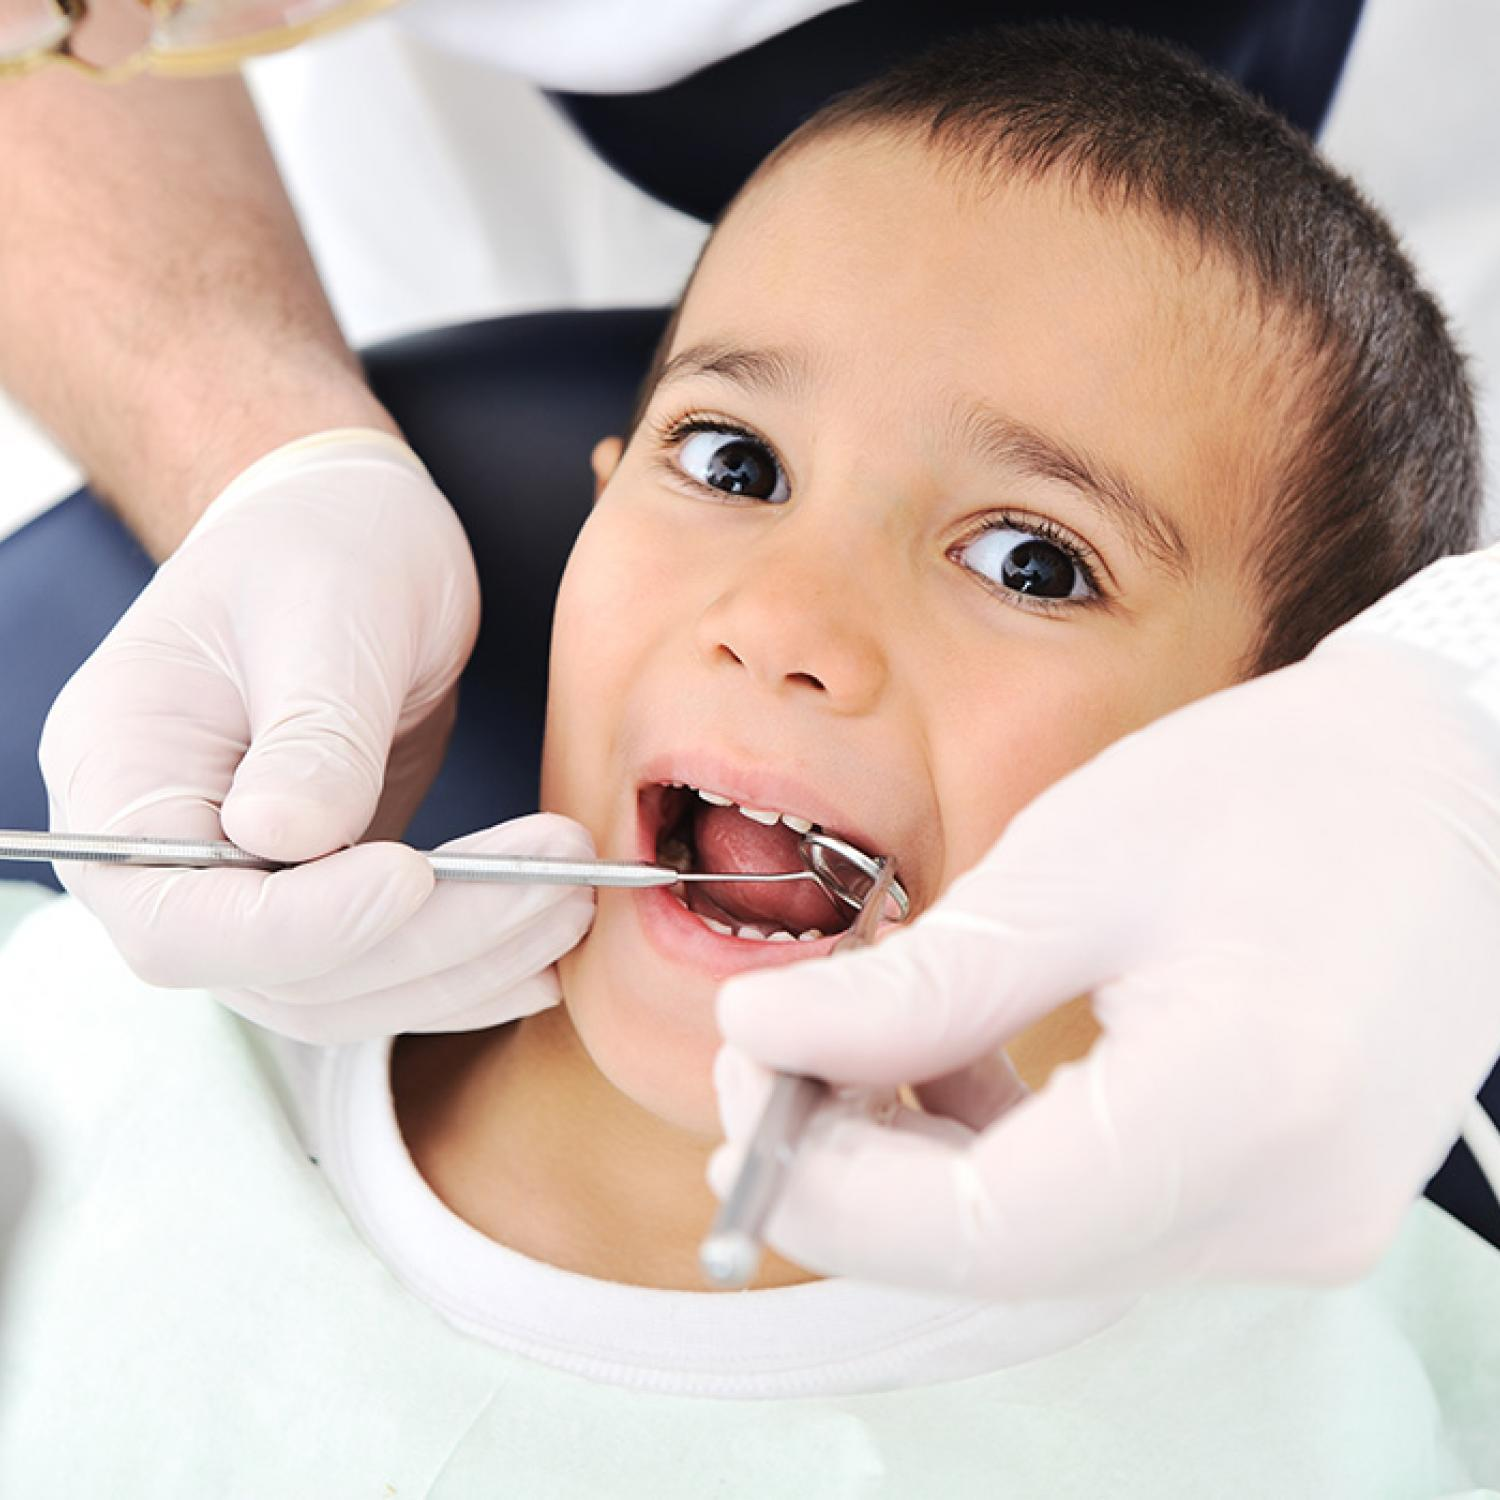 How To Keep Your Toddler Calm At The Dentist Parenting